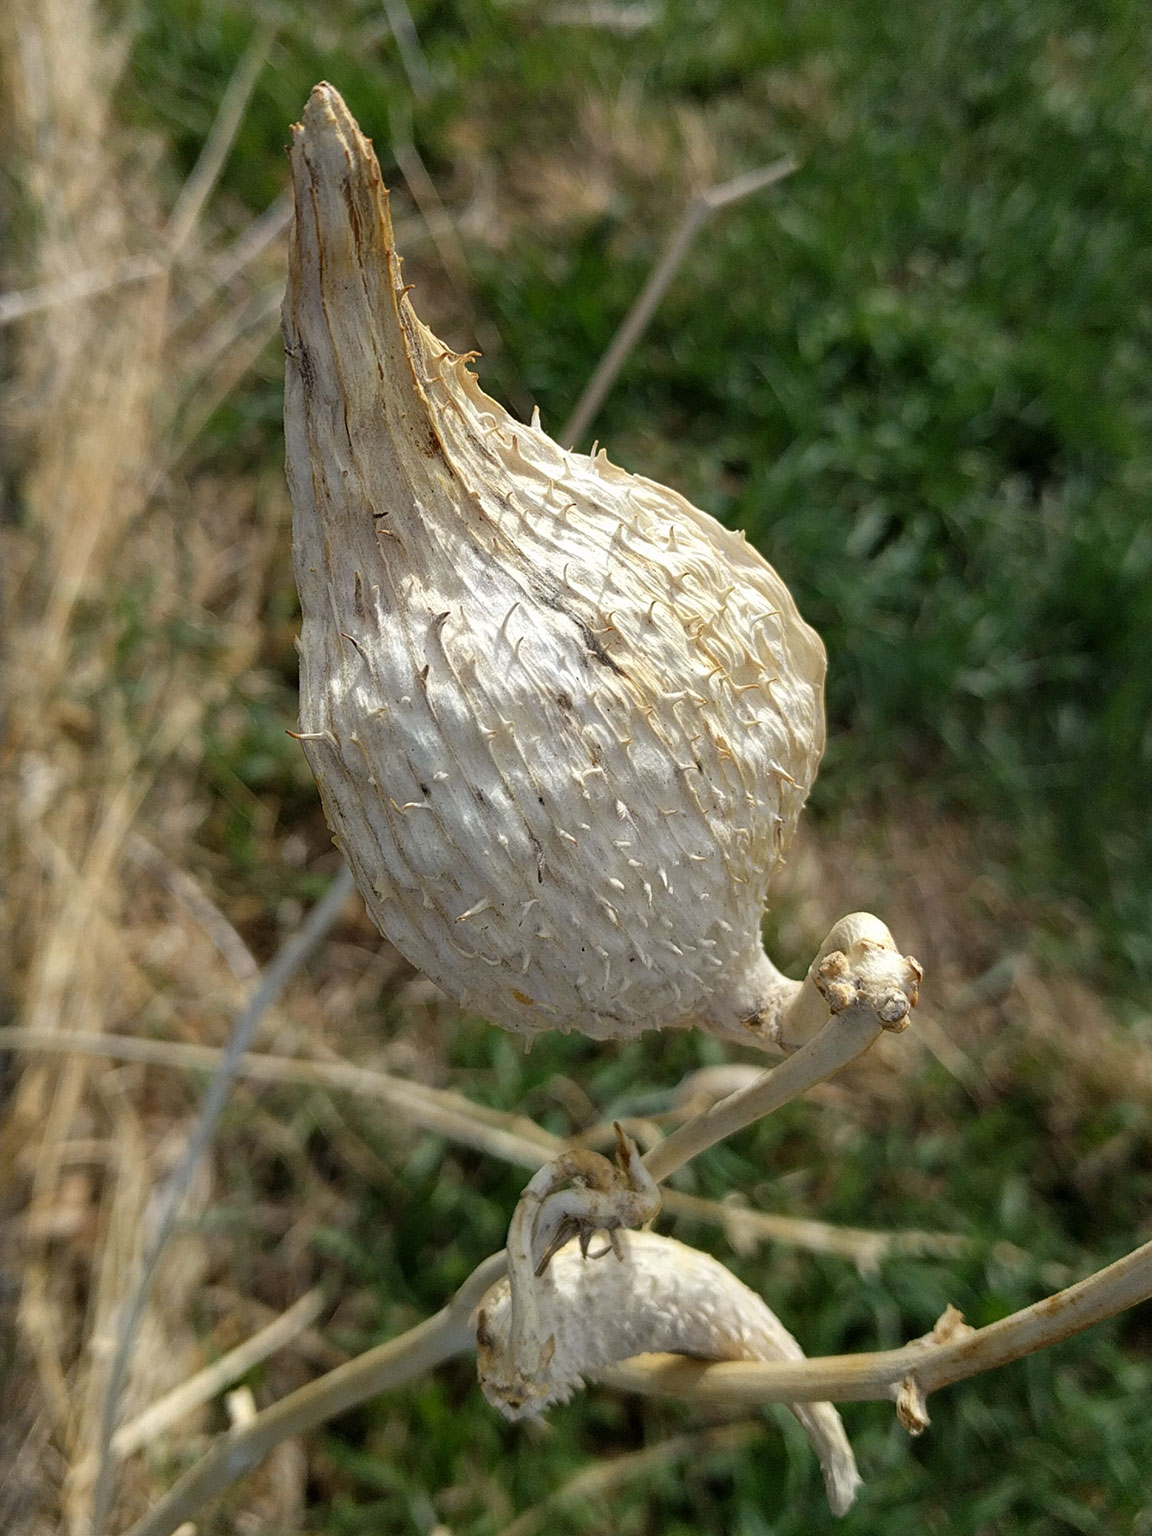 Dried milkweed pod husk against a background of fresh spring grasses